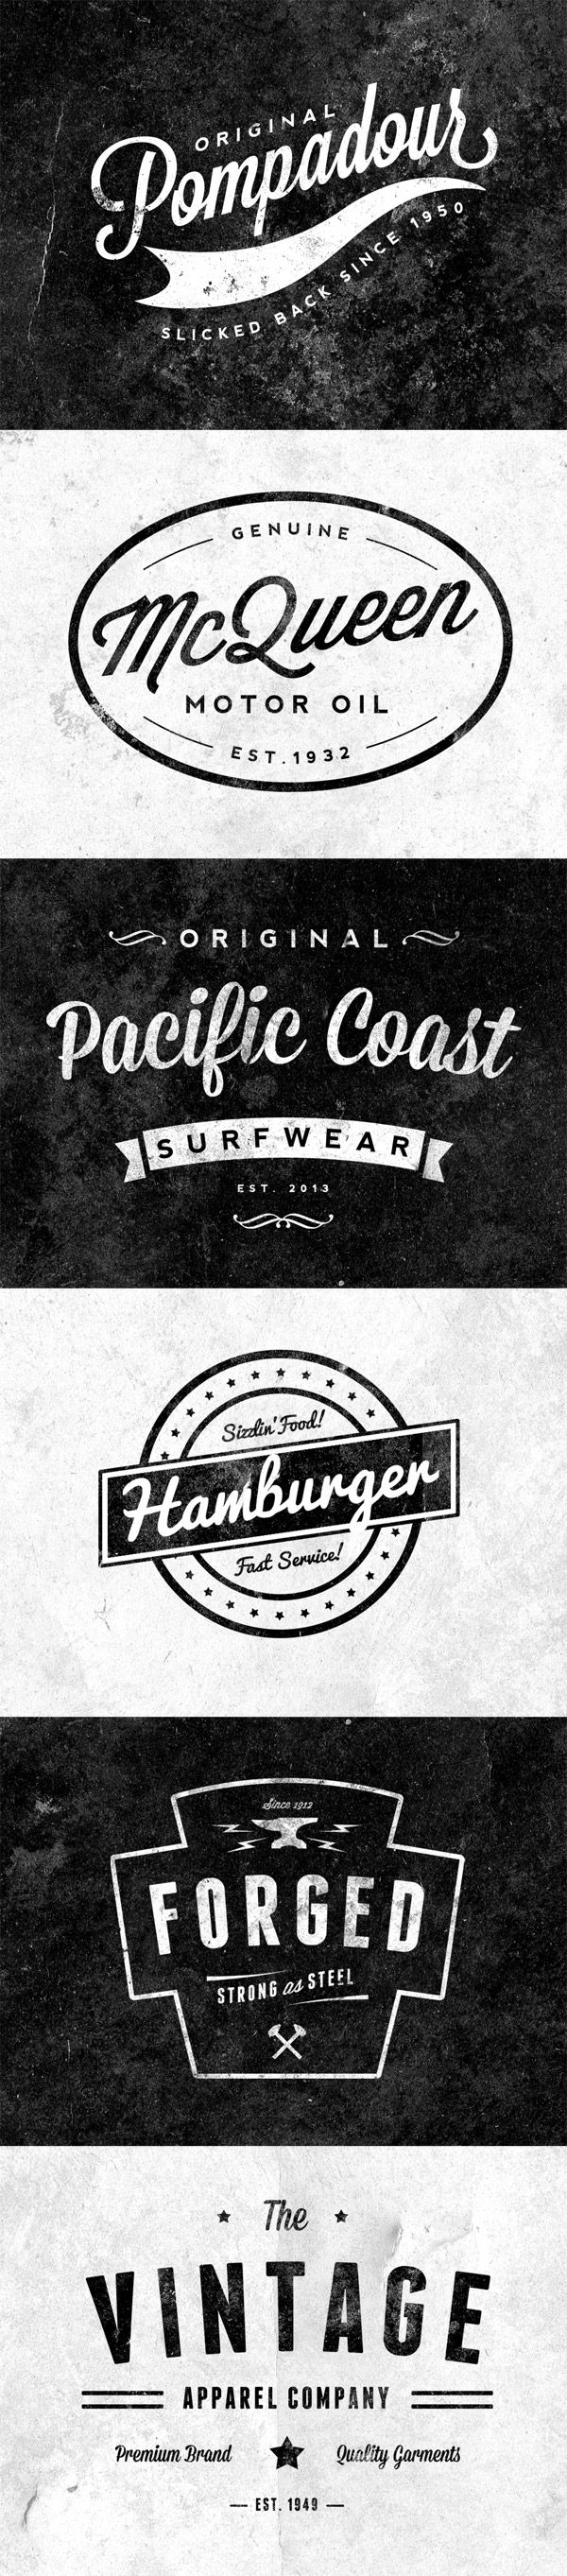 The sizzling Food Hamburger logo, a few down..  The circle design with the rectangle in the center is a neat idea..